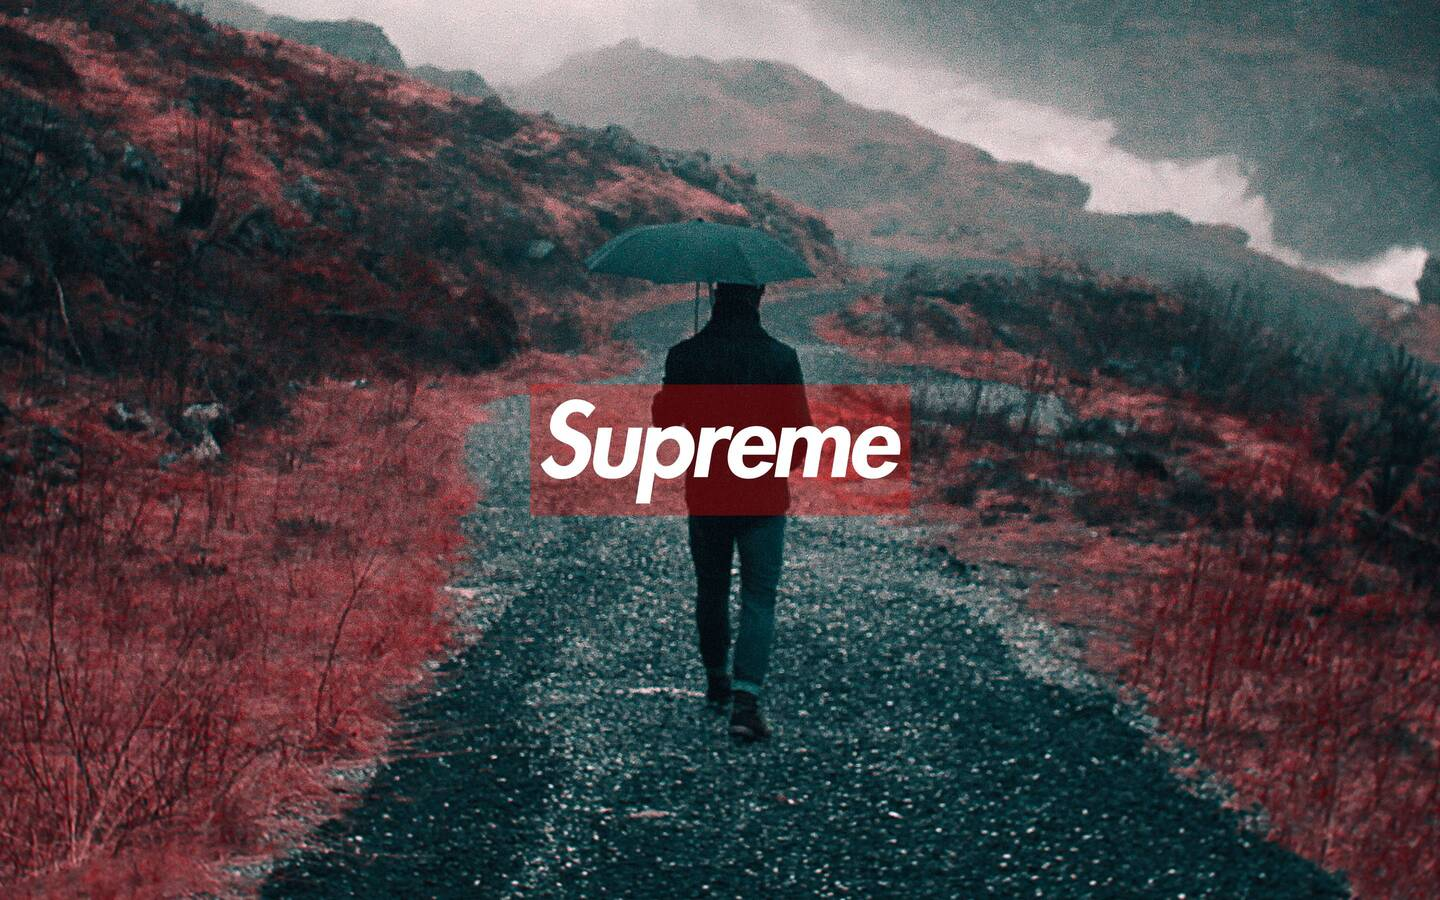 1440x900 Supreme 1440x900 Resolution Hd 4k Wallpapers Images